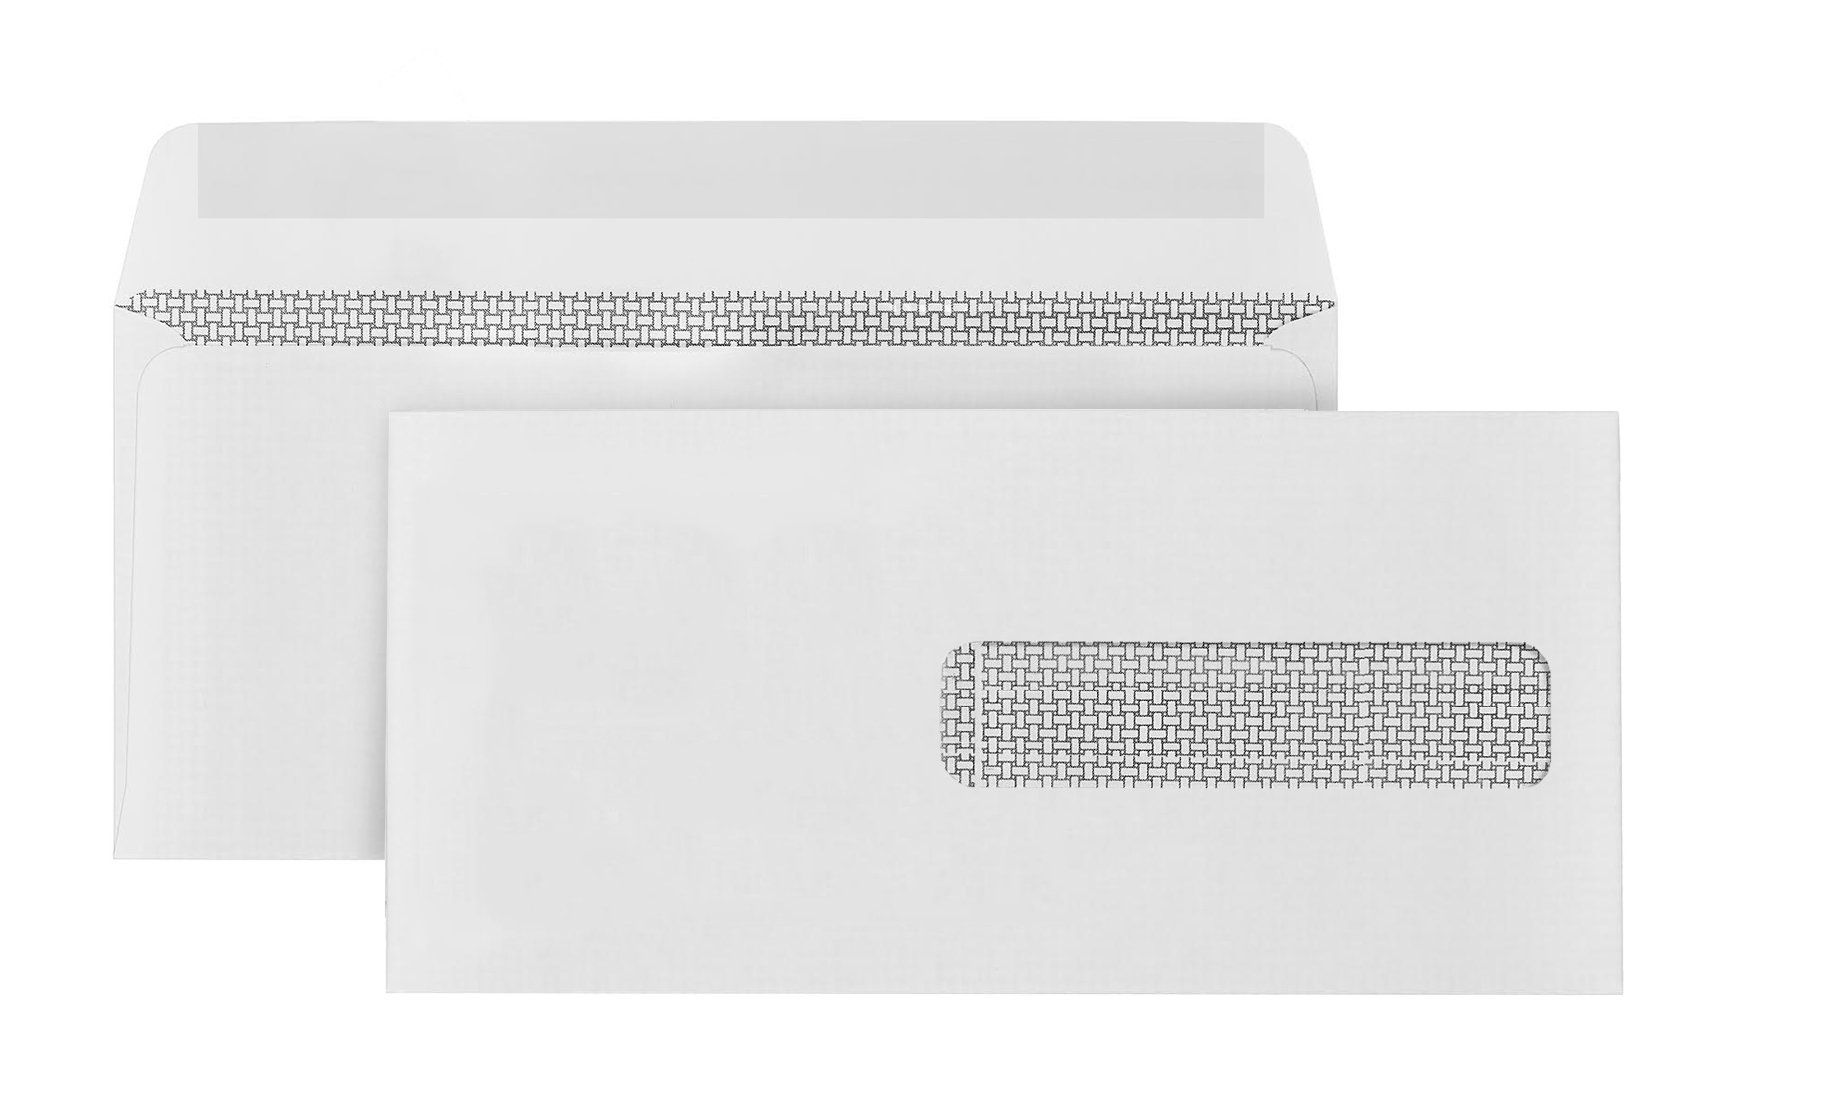 500 CMS 1500 Form Envelopes -Self Seal Design-Perfectly fits your HCFA medical billing CMS-1500 Forms -4 ½ X 9 ½'' (Pack of 500)